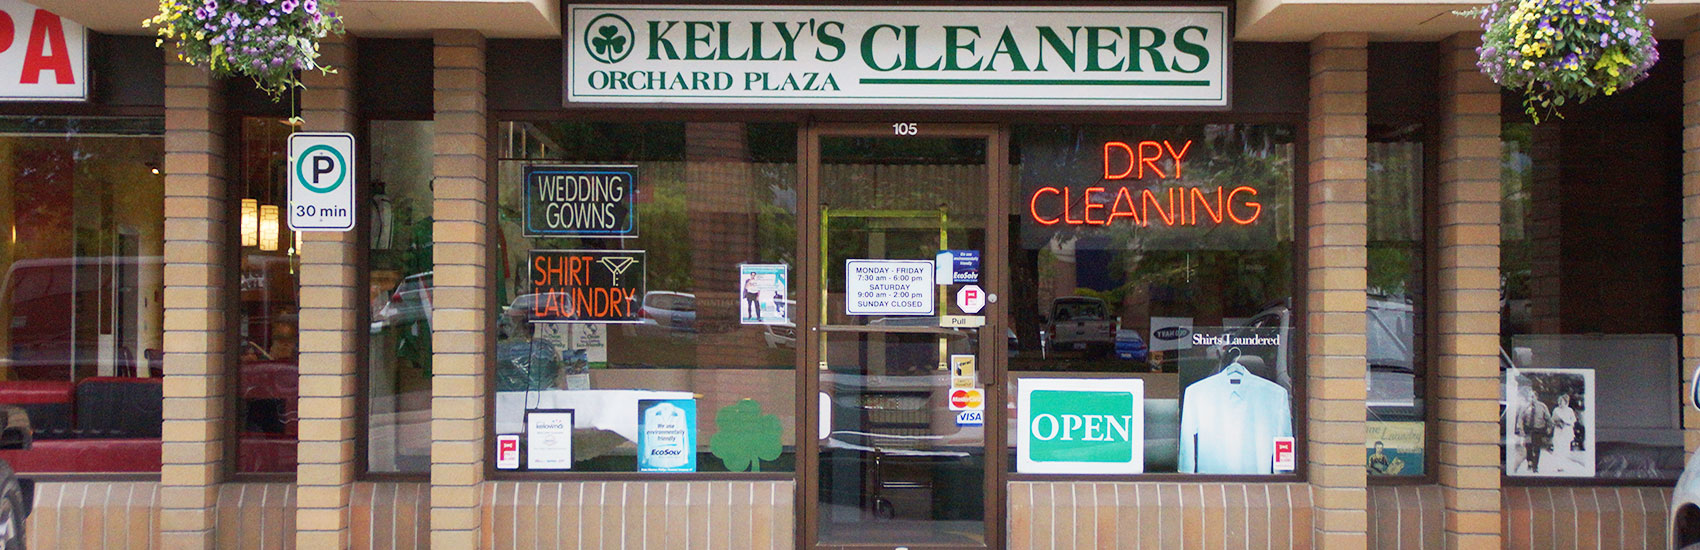 Kelly's cleaners - part of the Eco-Clean group of Kelowna based drycleaners